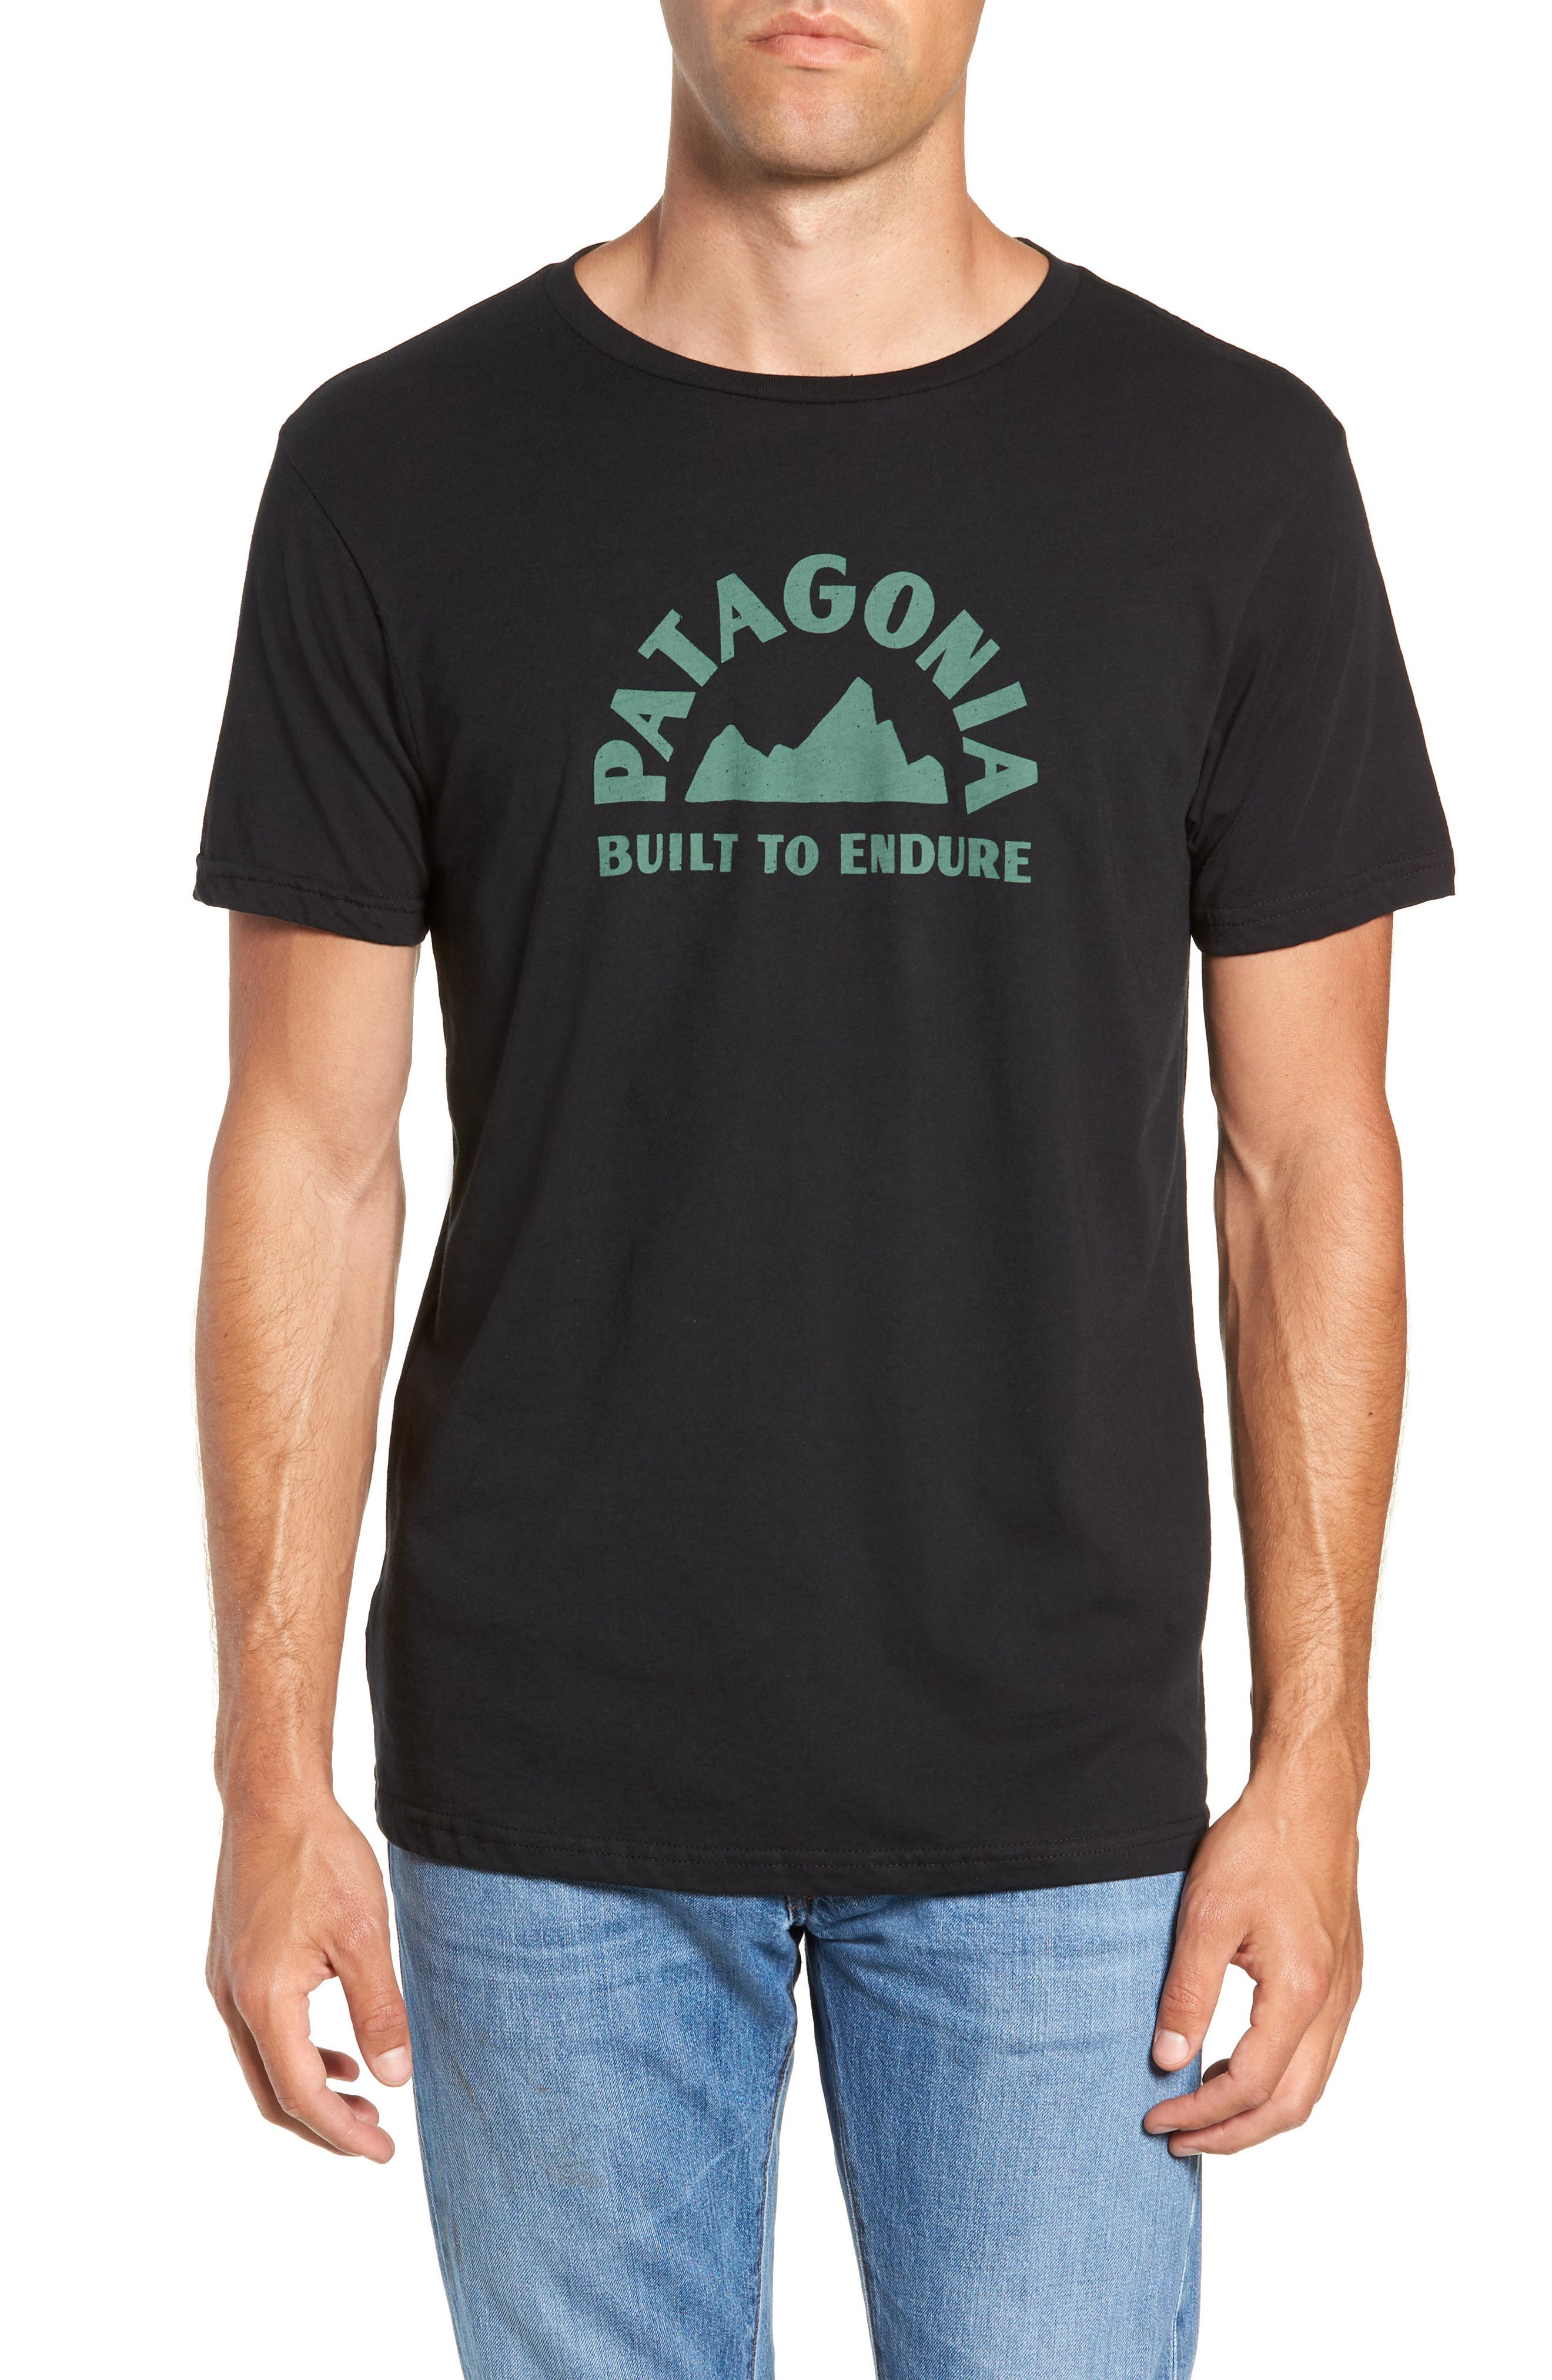 Geologers Organic Cotton T-Shirt,                         Main,                         color, BLACK